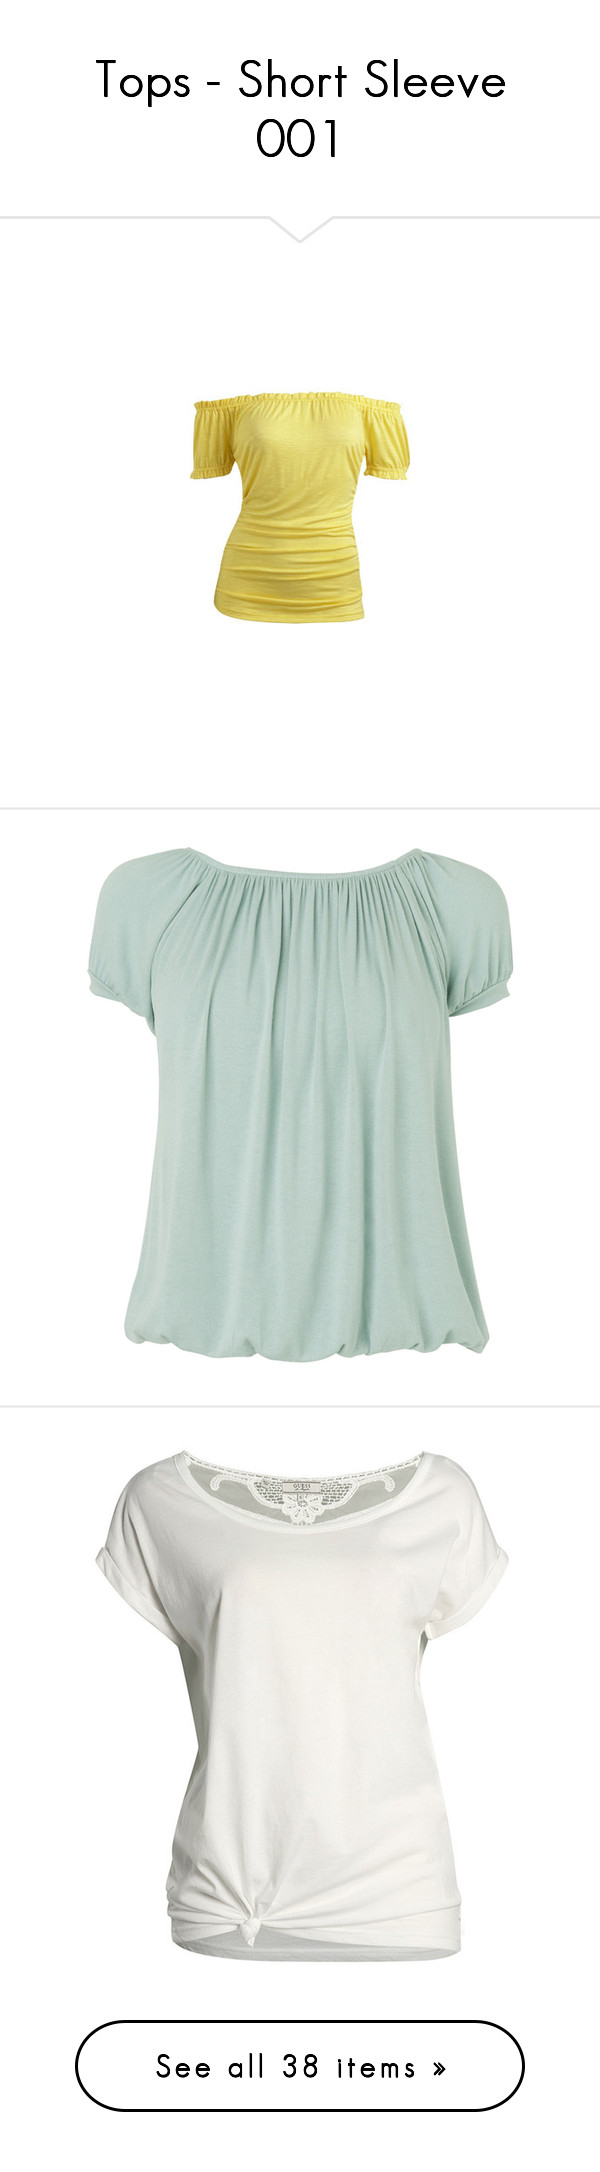 """""""Tops - Short Sleeve 001"""" by blessthe-brokenroad ❤ liked on Polyvore featuring tops, shirts, blusas, t-shirts, off shoulder ruffle top, frilly tops, off shoulder top, frilly shirt, off shoulder shirt and blue"""